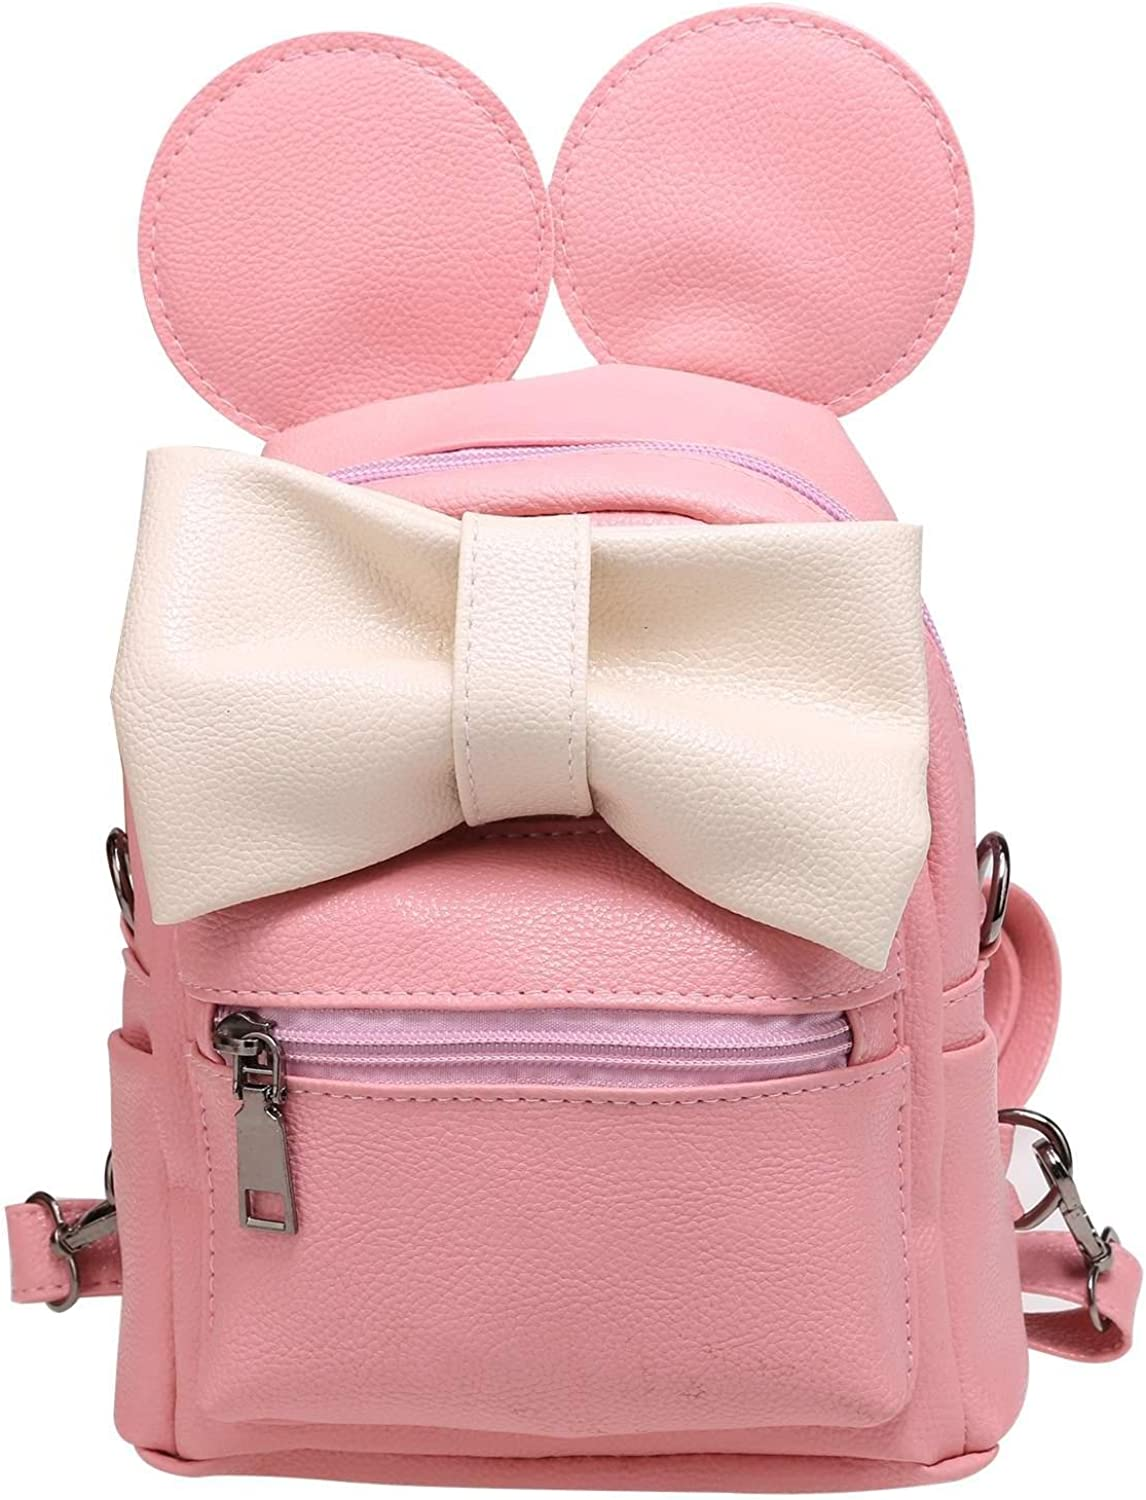 FANEO girl s shiny attractive practical relaxed casual backpack girl s abstract fine reduced age atmosphere three-dimensional backpack Kids Luggage